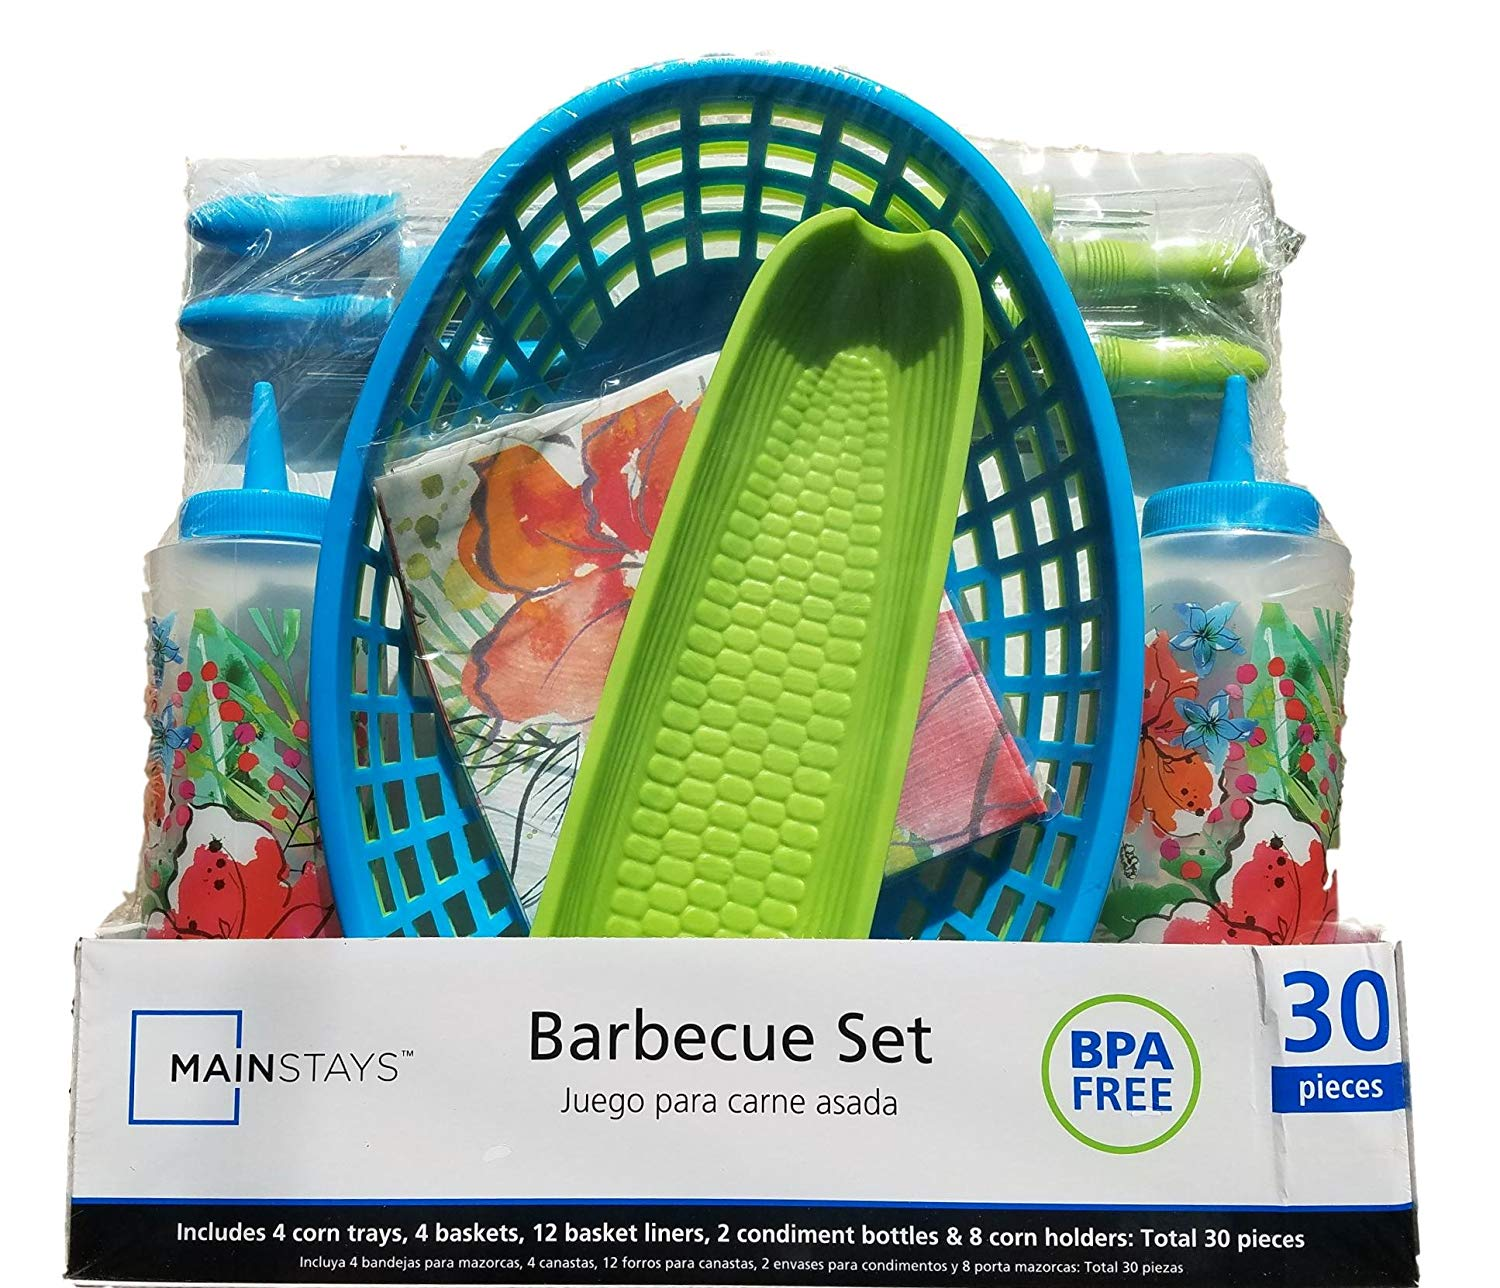 BBQ Picnic Serving Set with Green & Blue Plastic Hamburger Baskets, Floral Food Basket Liners, Corn Trays with Corn Cob Holders, Ketchup & Mustard Condiment Bottle